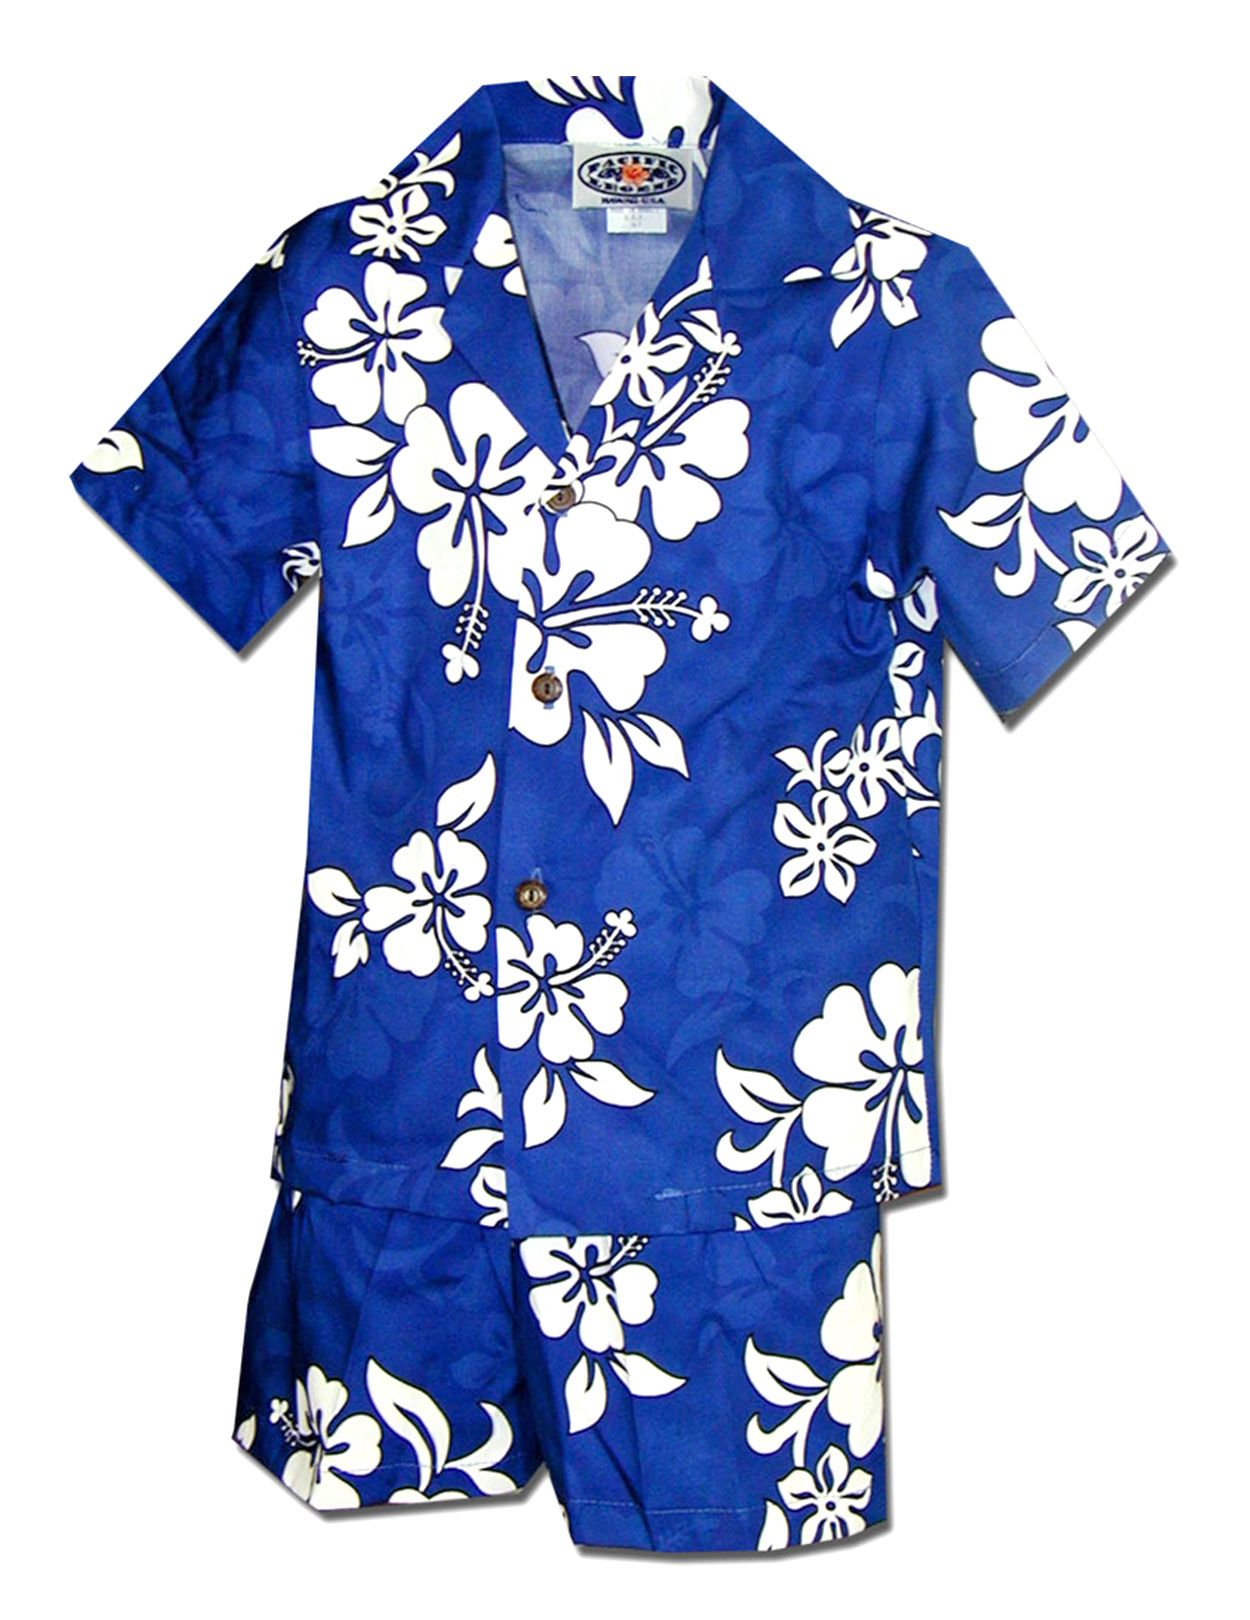 c709d251 Hawaii Clothing Stores Near Me